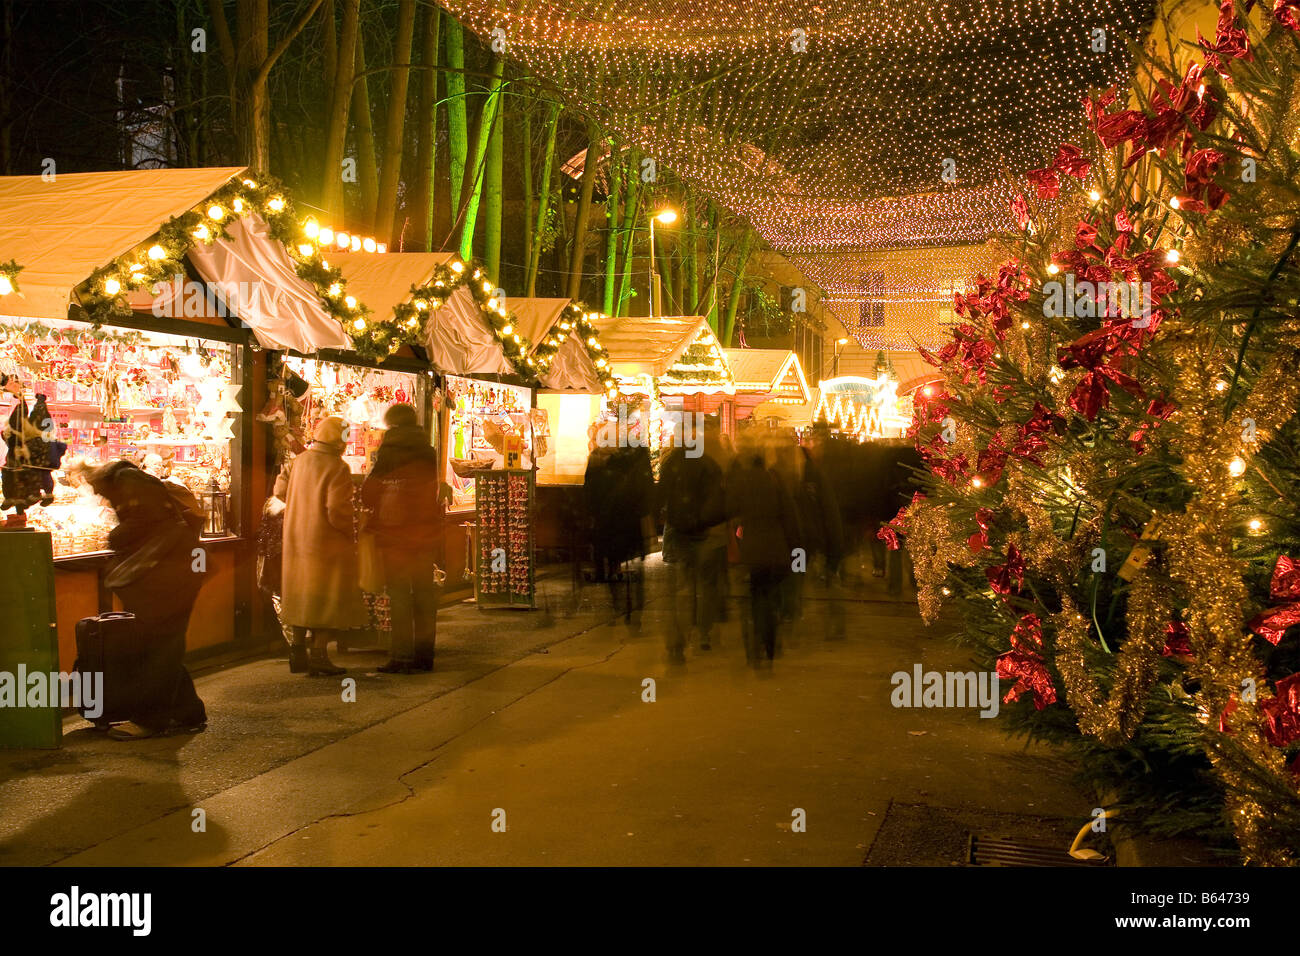 Christmas Markets, Berlin, Germany - Stock Image